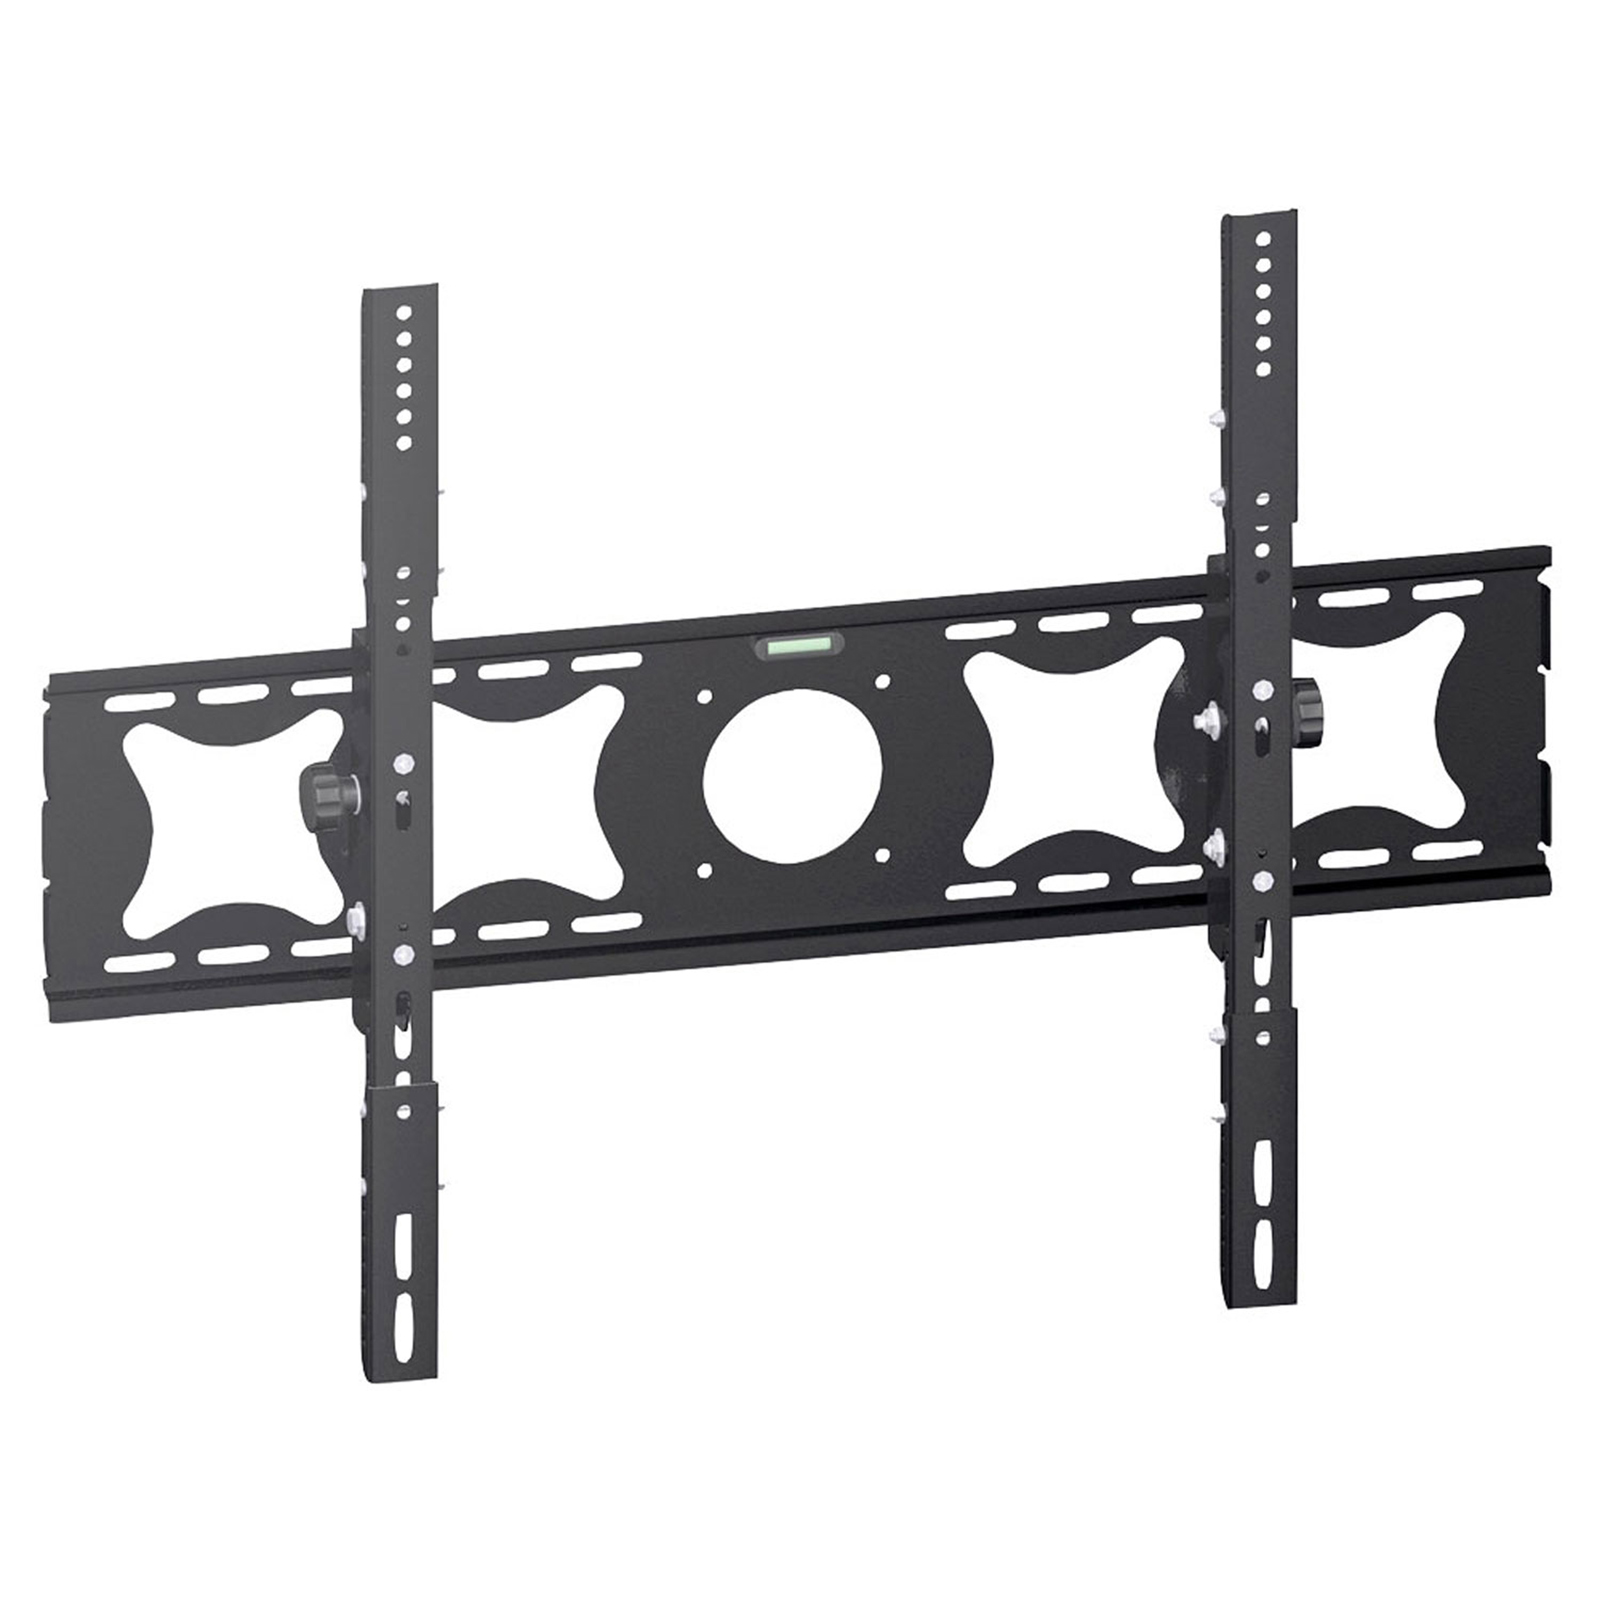 Kmart Tv Mount Pyle 36 Quot To 65 Quot Flat Panel Tilted Tv Wall Mount Tvs